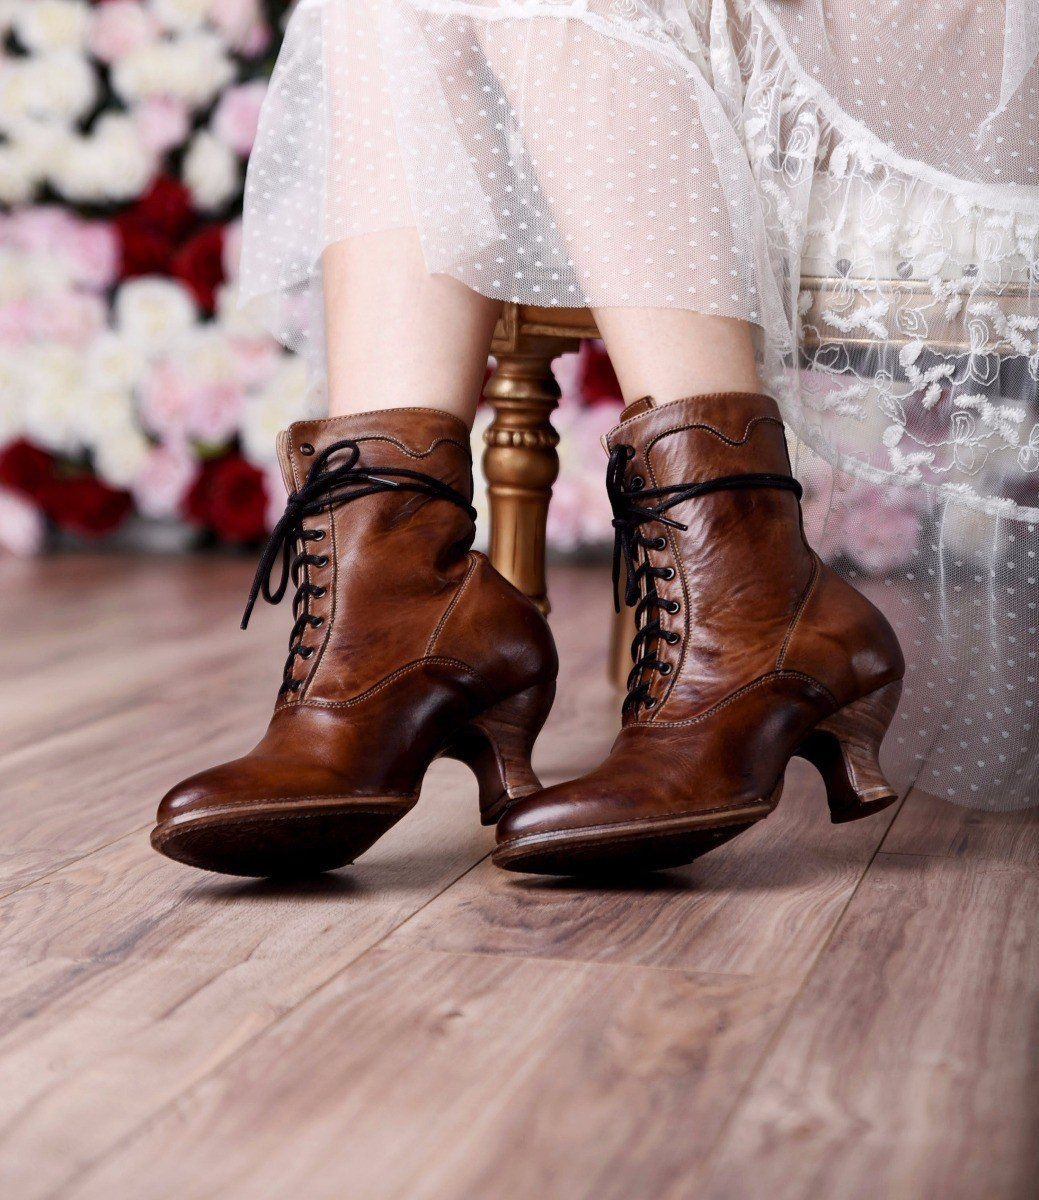 Victorian Shoes Victorian Inspired Leather Ankle Boots in Tan Rustic   255.00 AT vintagedancer.com 9410ad69014f